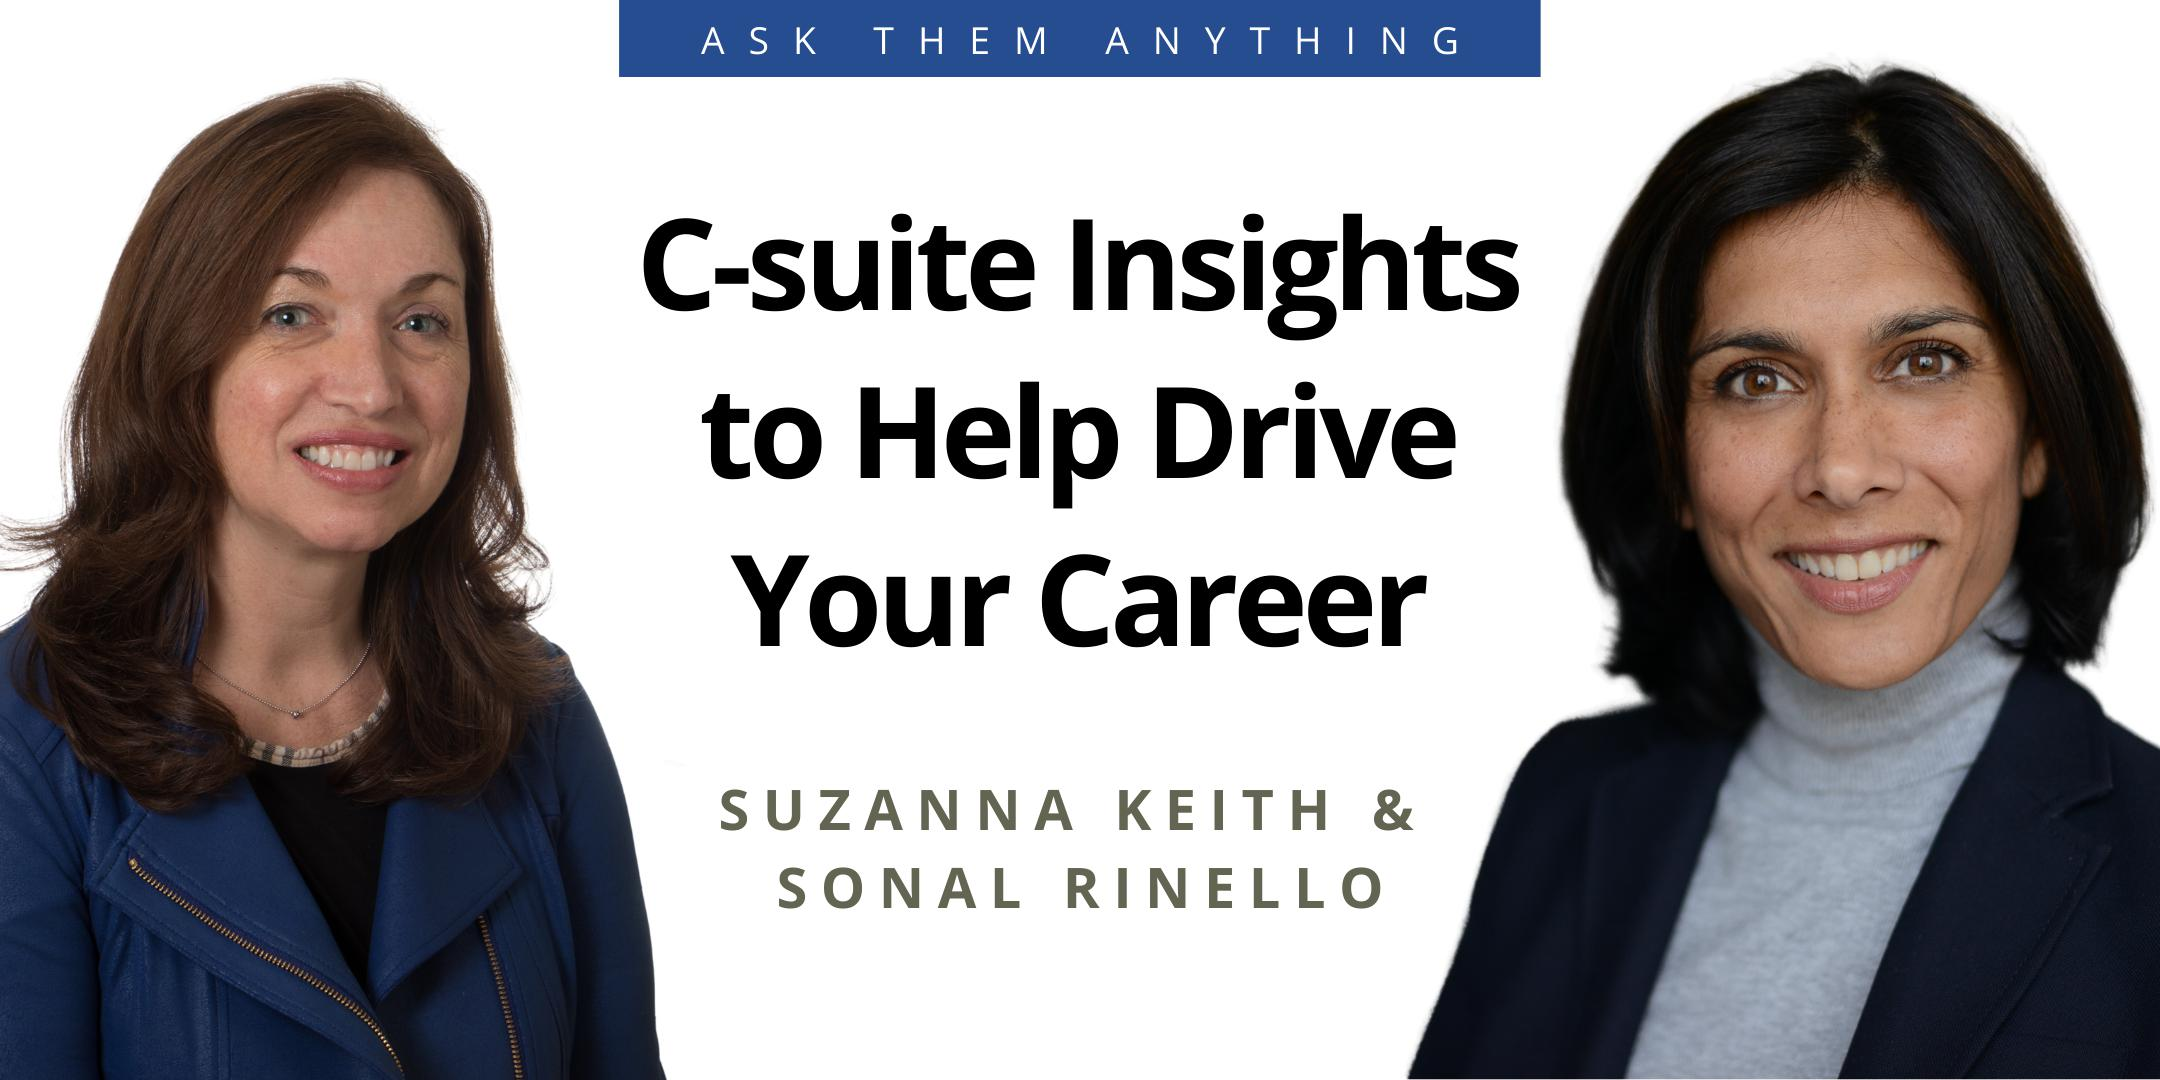 C-suite Insights to Help Drive Your Career